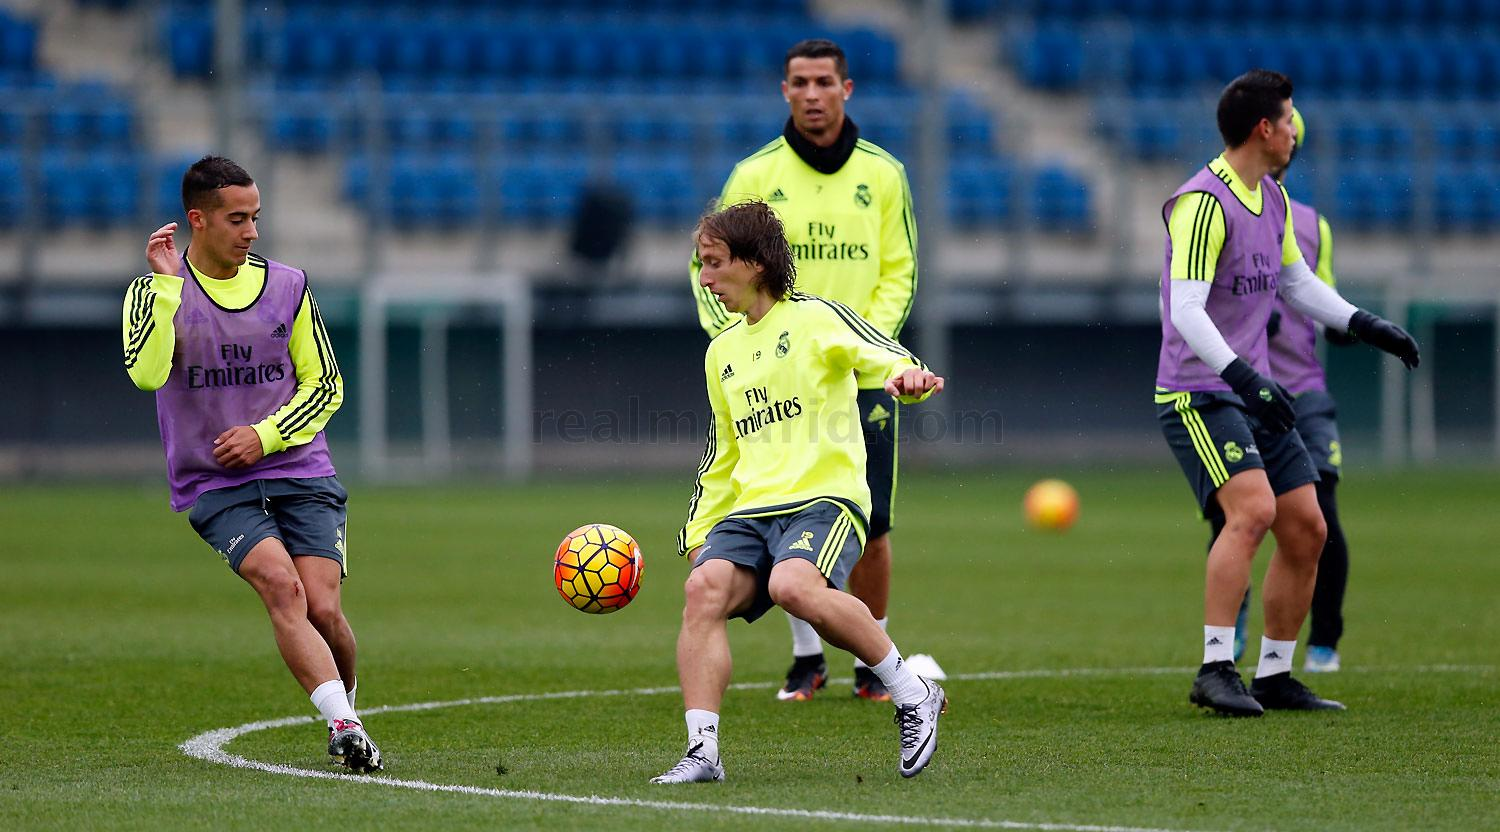 Real Madrid - Entrenamiento del Real Madrid - 14-01-2016